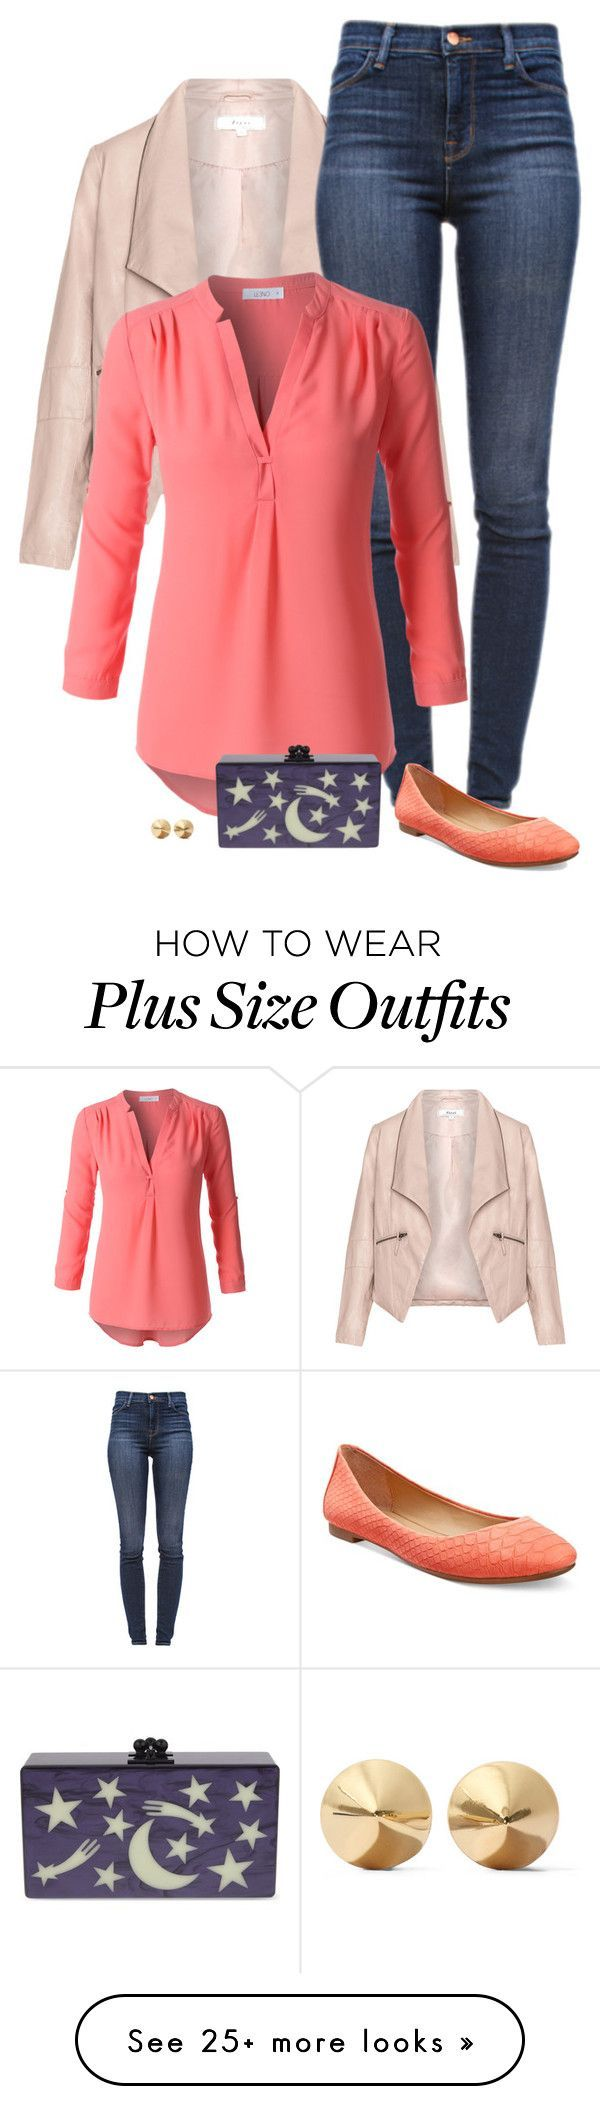 """""""cute clutch"""" by divacrafts on Polyvore featuring Zizzi, J Brand, LE3NO, Alfani, Edie Parker, Eddie Borgo, women's clothing, women, female and woman"""